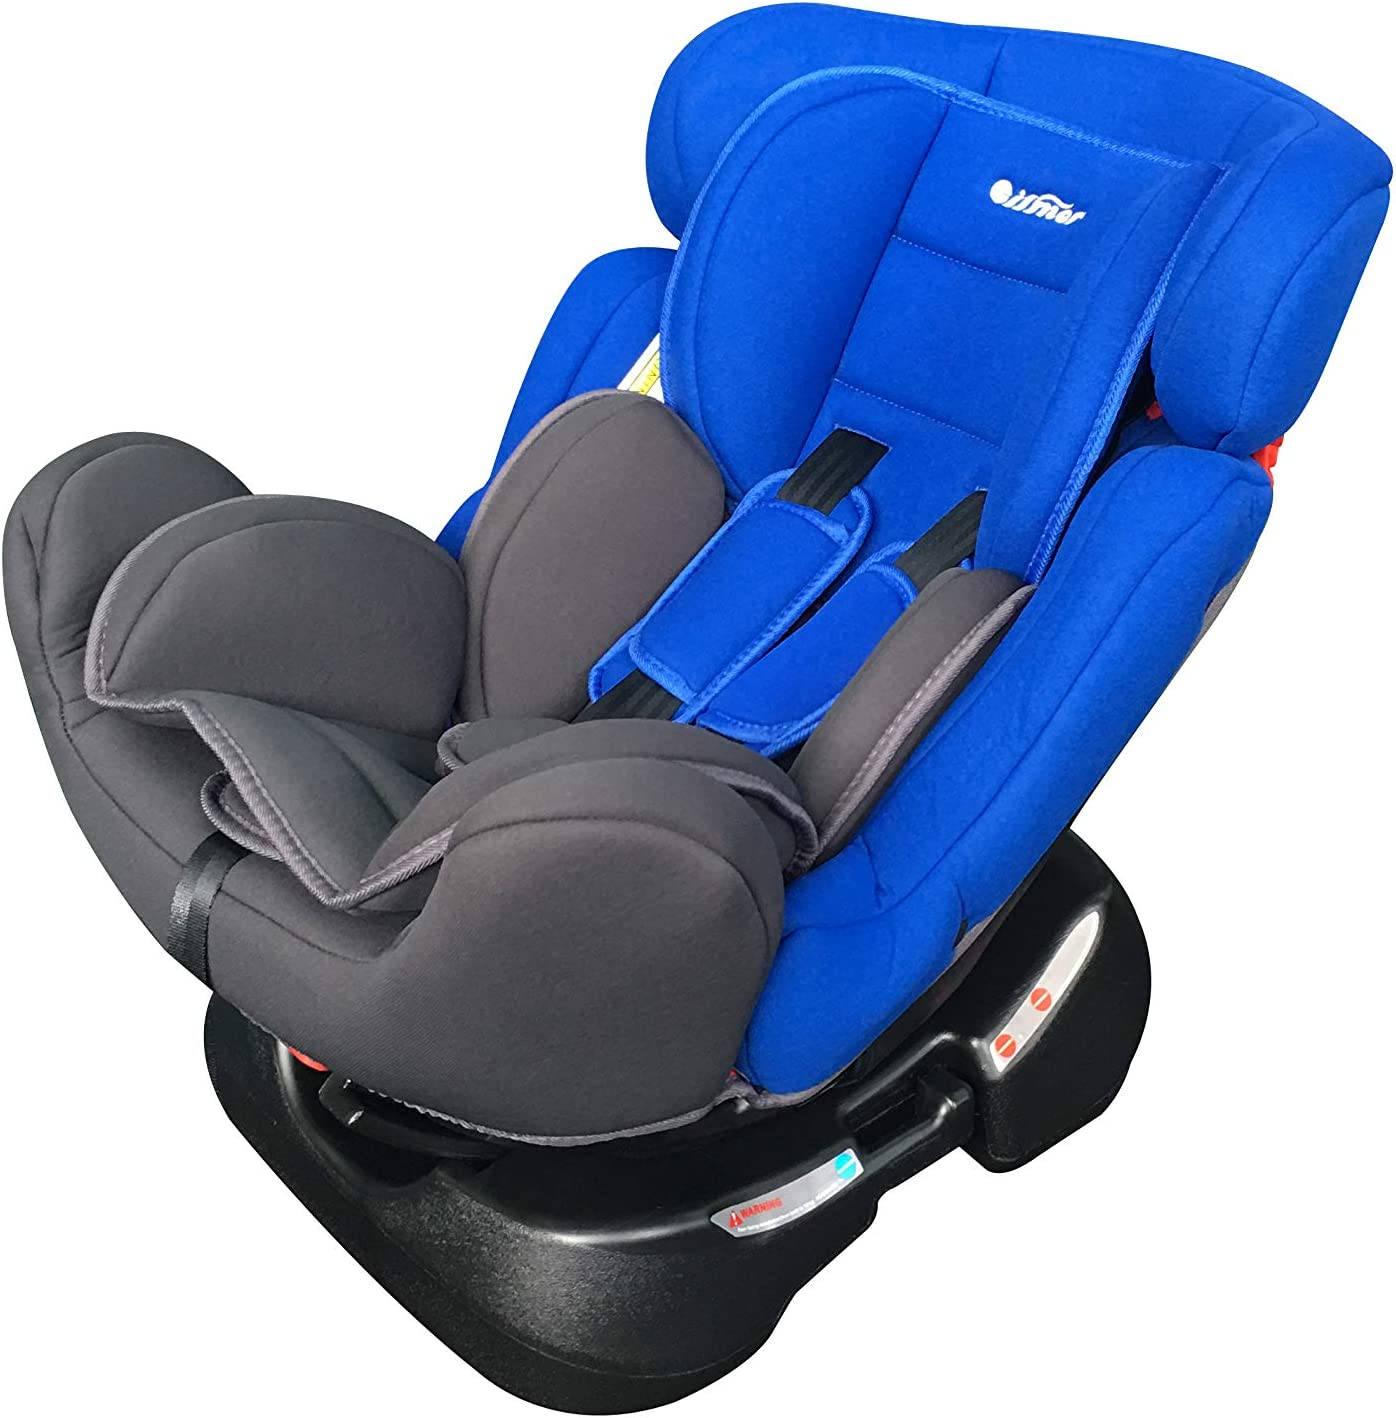 Red Gilmer BXS-213 baby car seat group 0,1,2 TUV certified